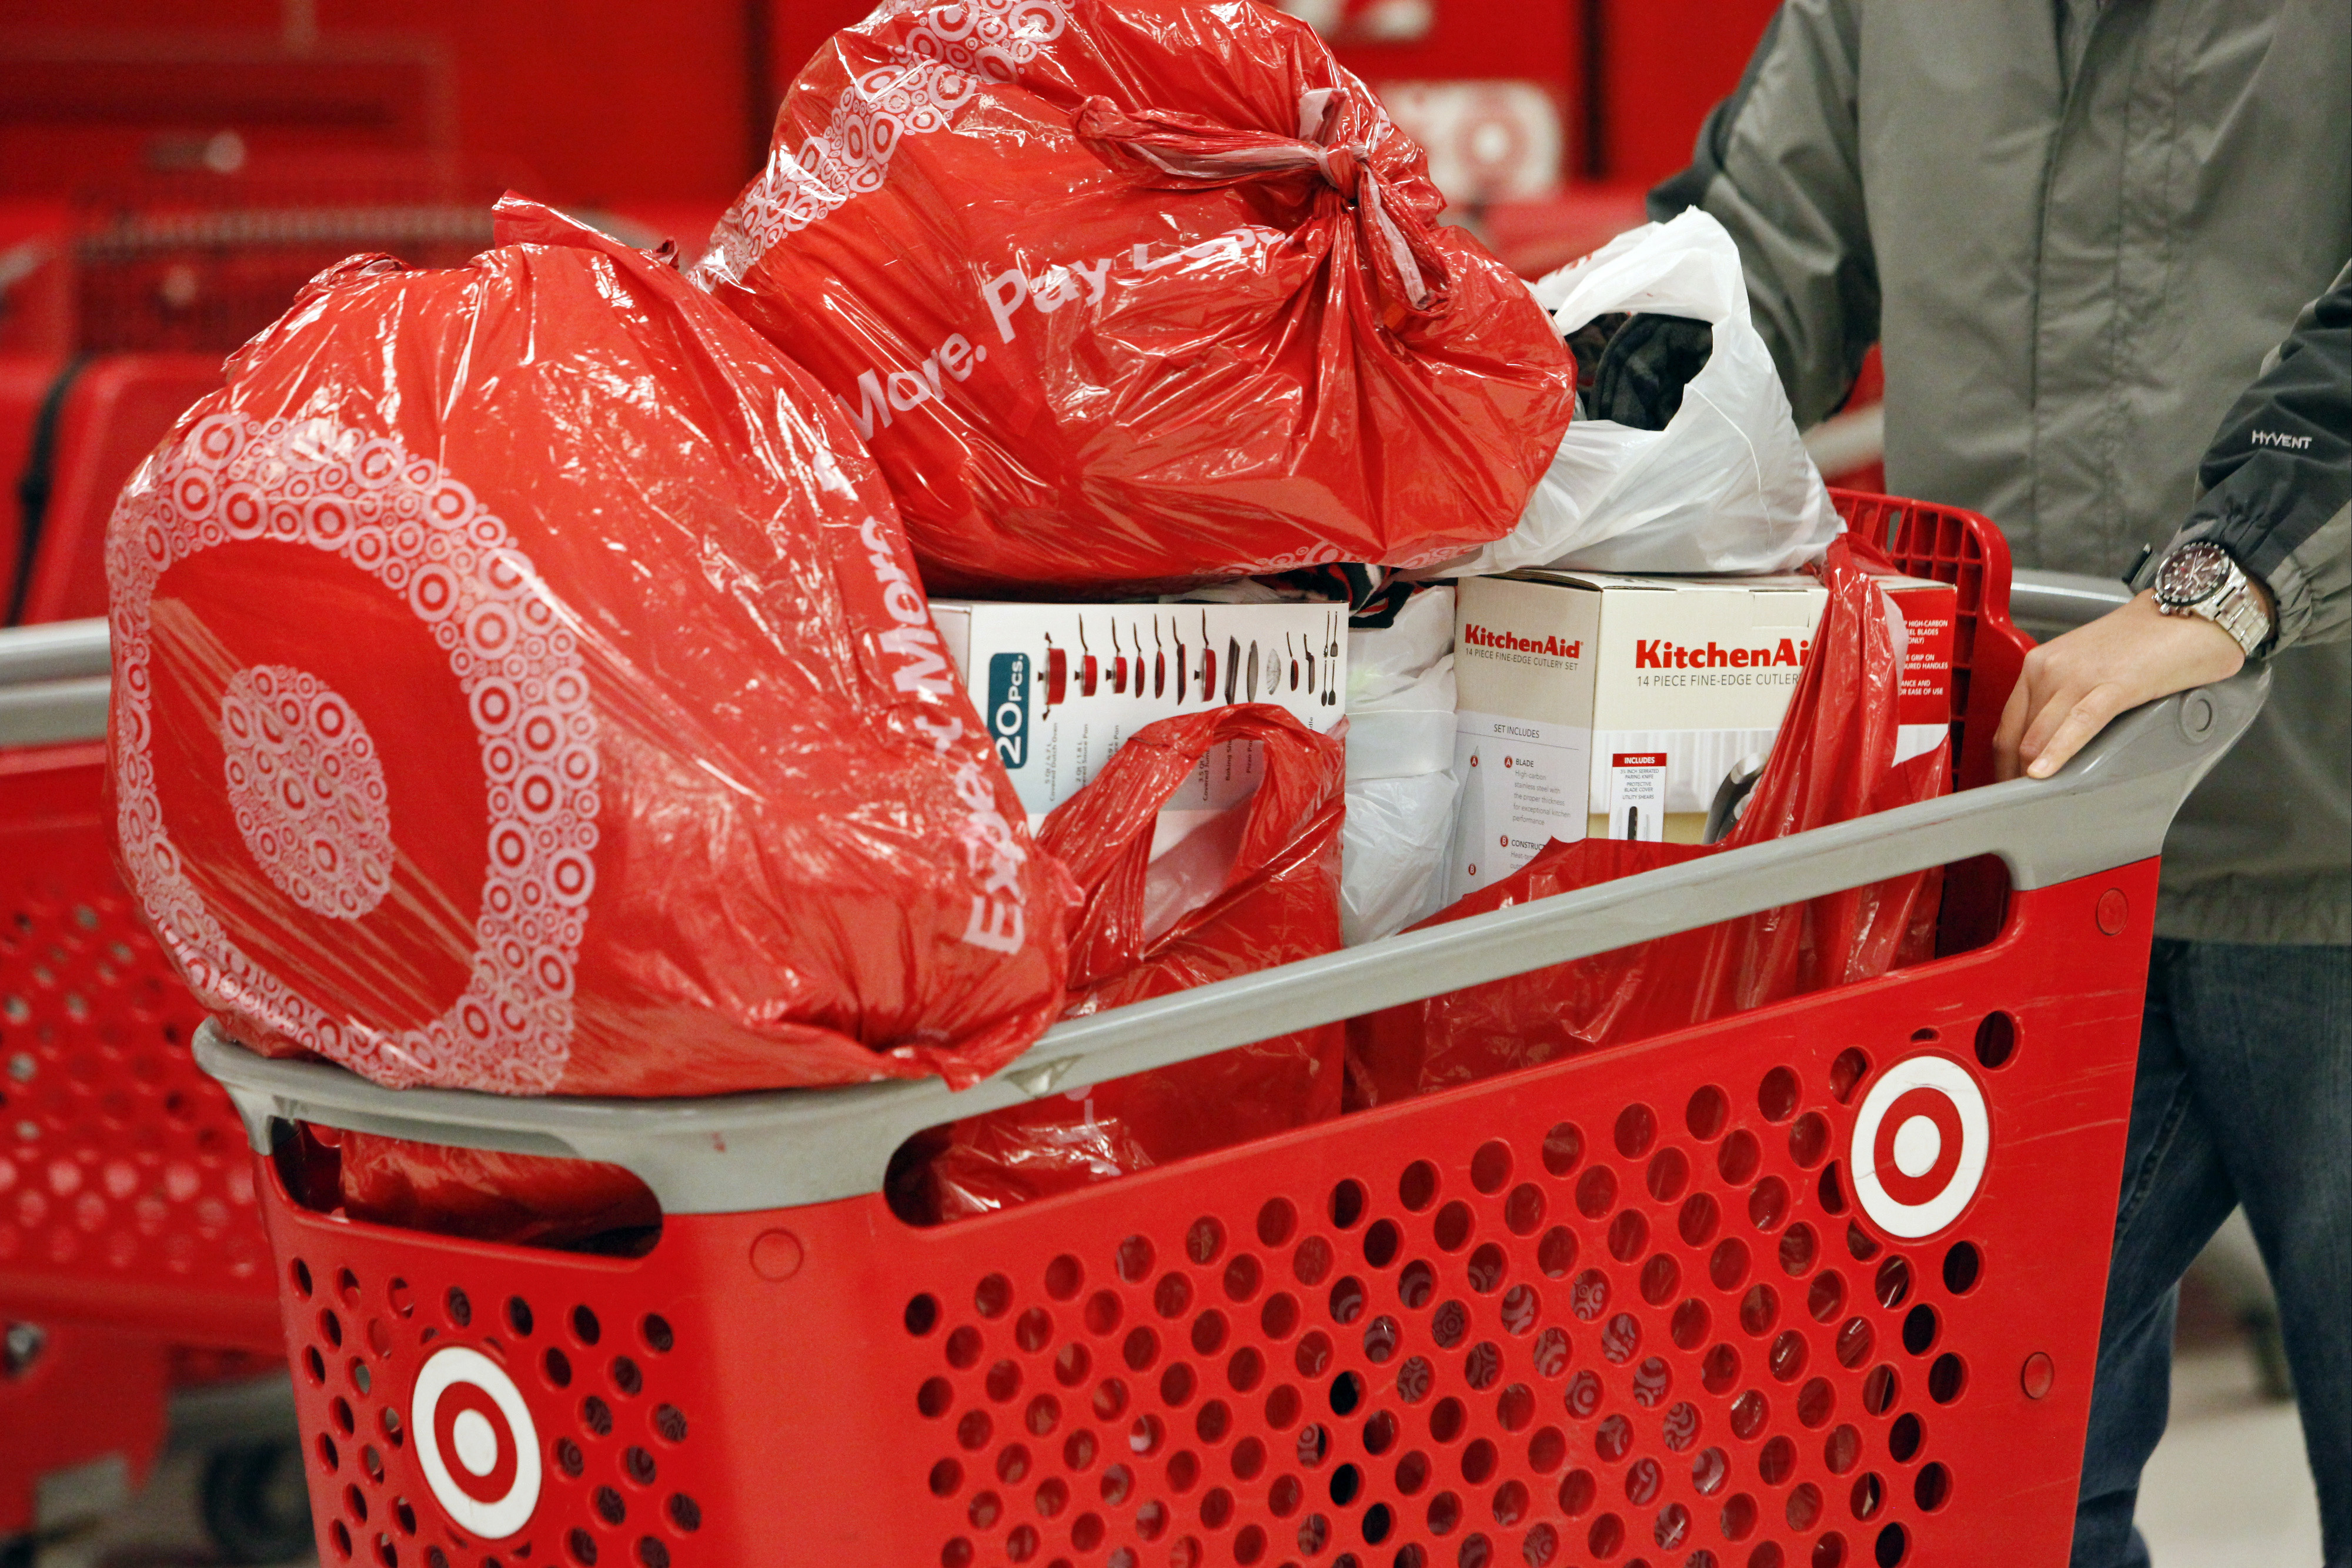 A customer pushes a shopping cart laden with merchandise at a Target Corp. store opening ahead of Black Friday in Chicago, Illinois, U.S., on Thursday, Nov. 28, 2013.